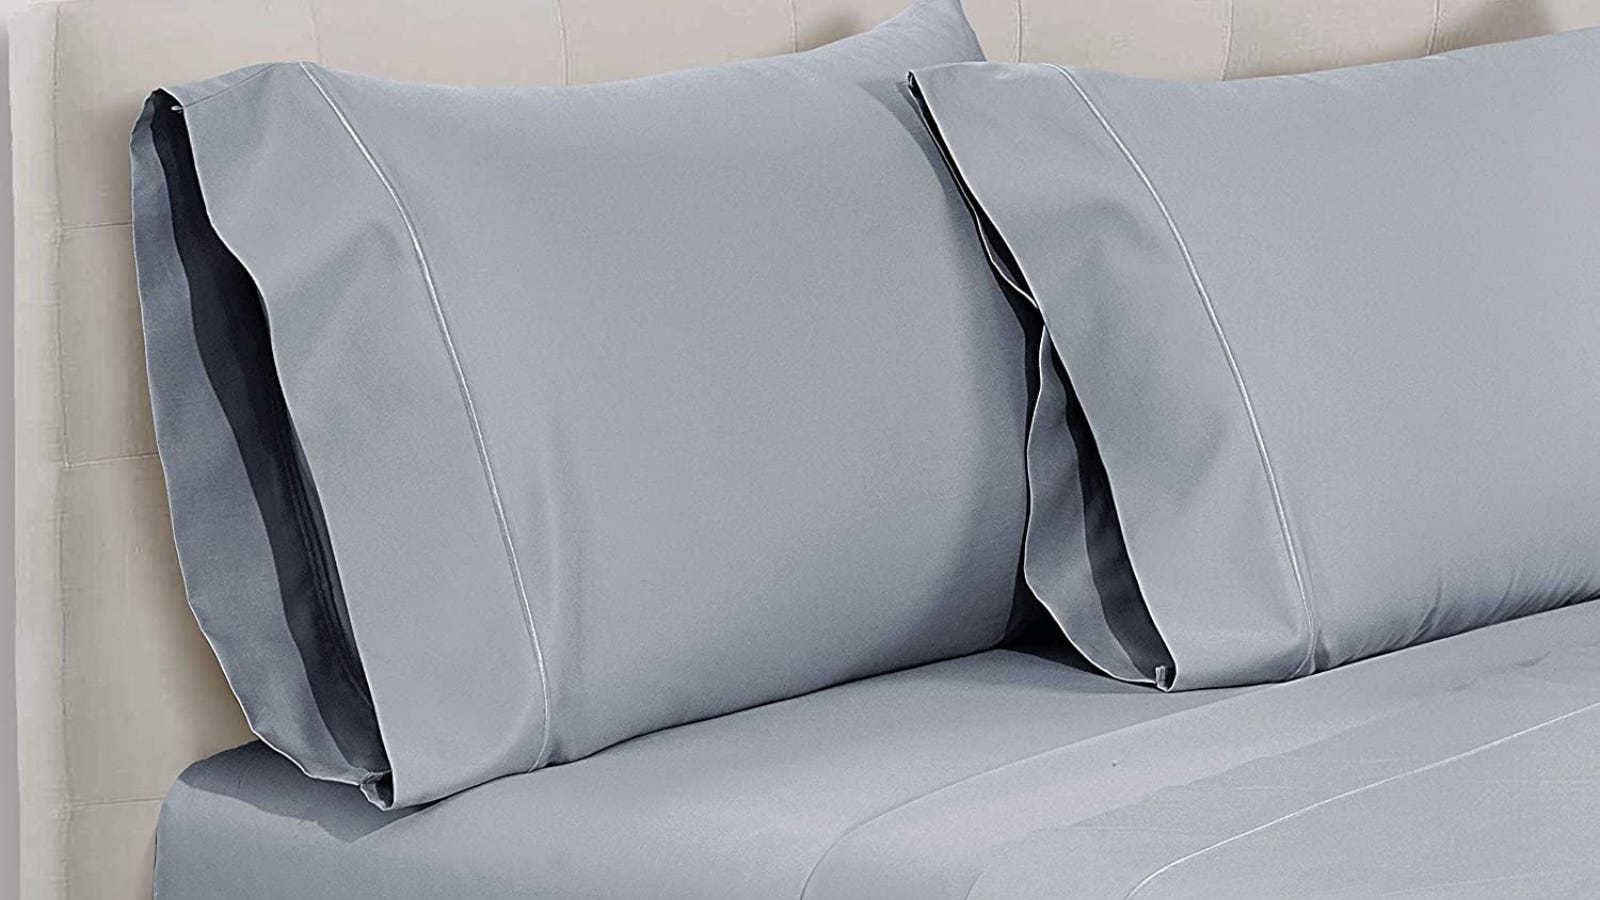 Two silver pillows and a matching sheet being displayed on a bed.